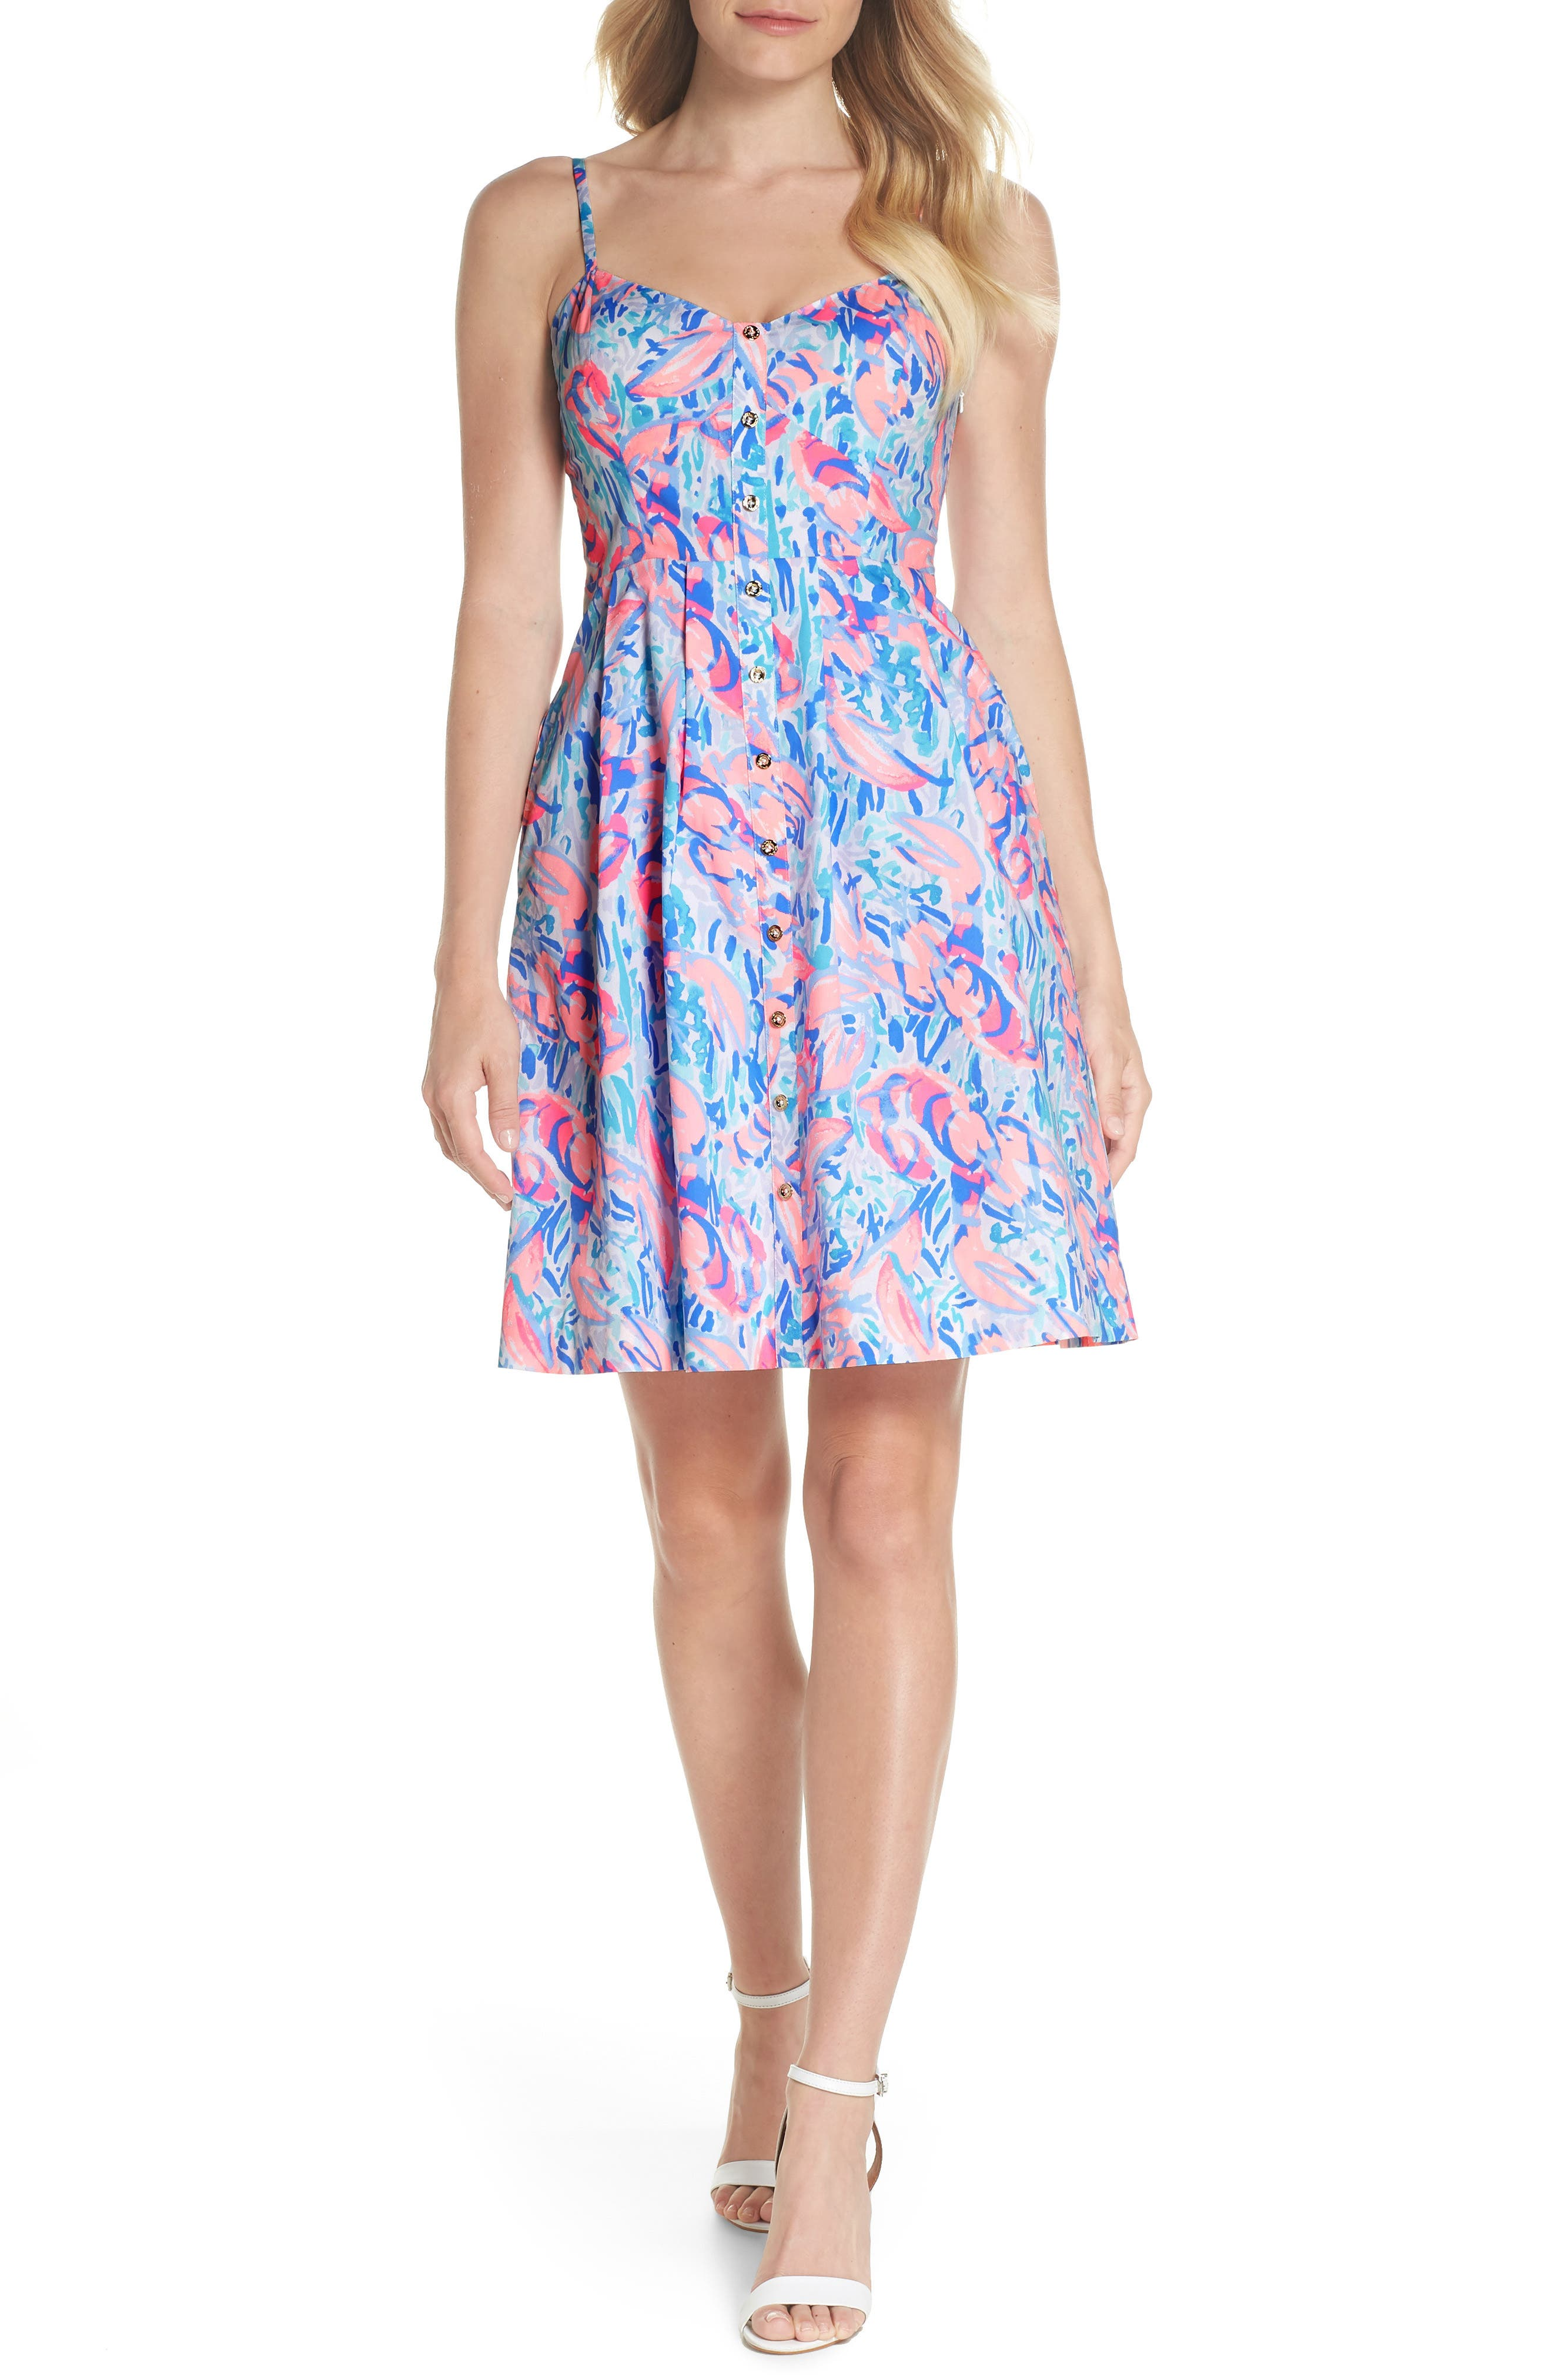 Easton Fit & Flare Dress,                             Main thumbnail 1, color,                             Cosmic Coral Cracked Up